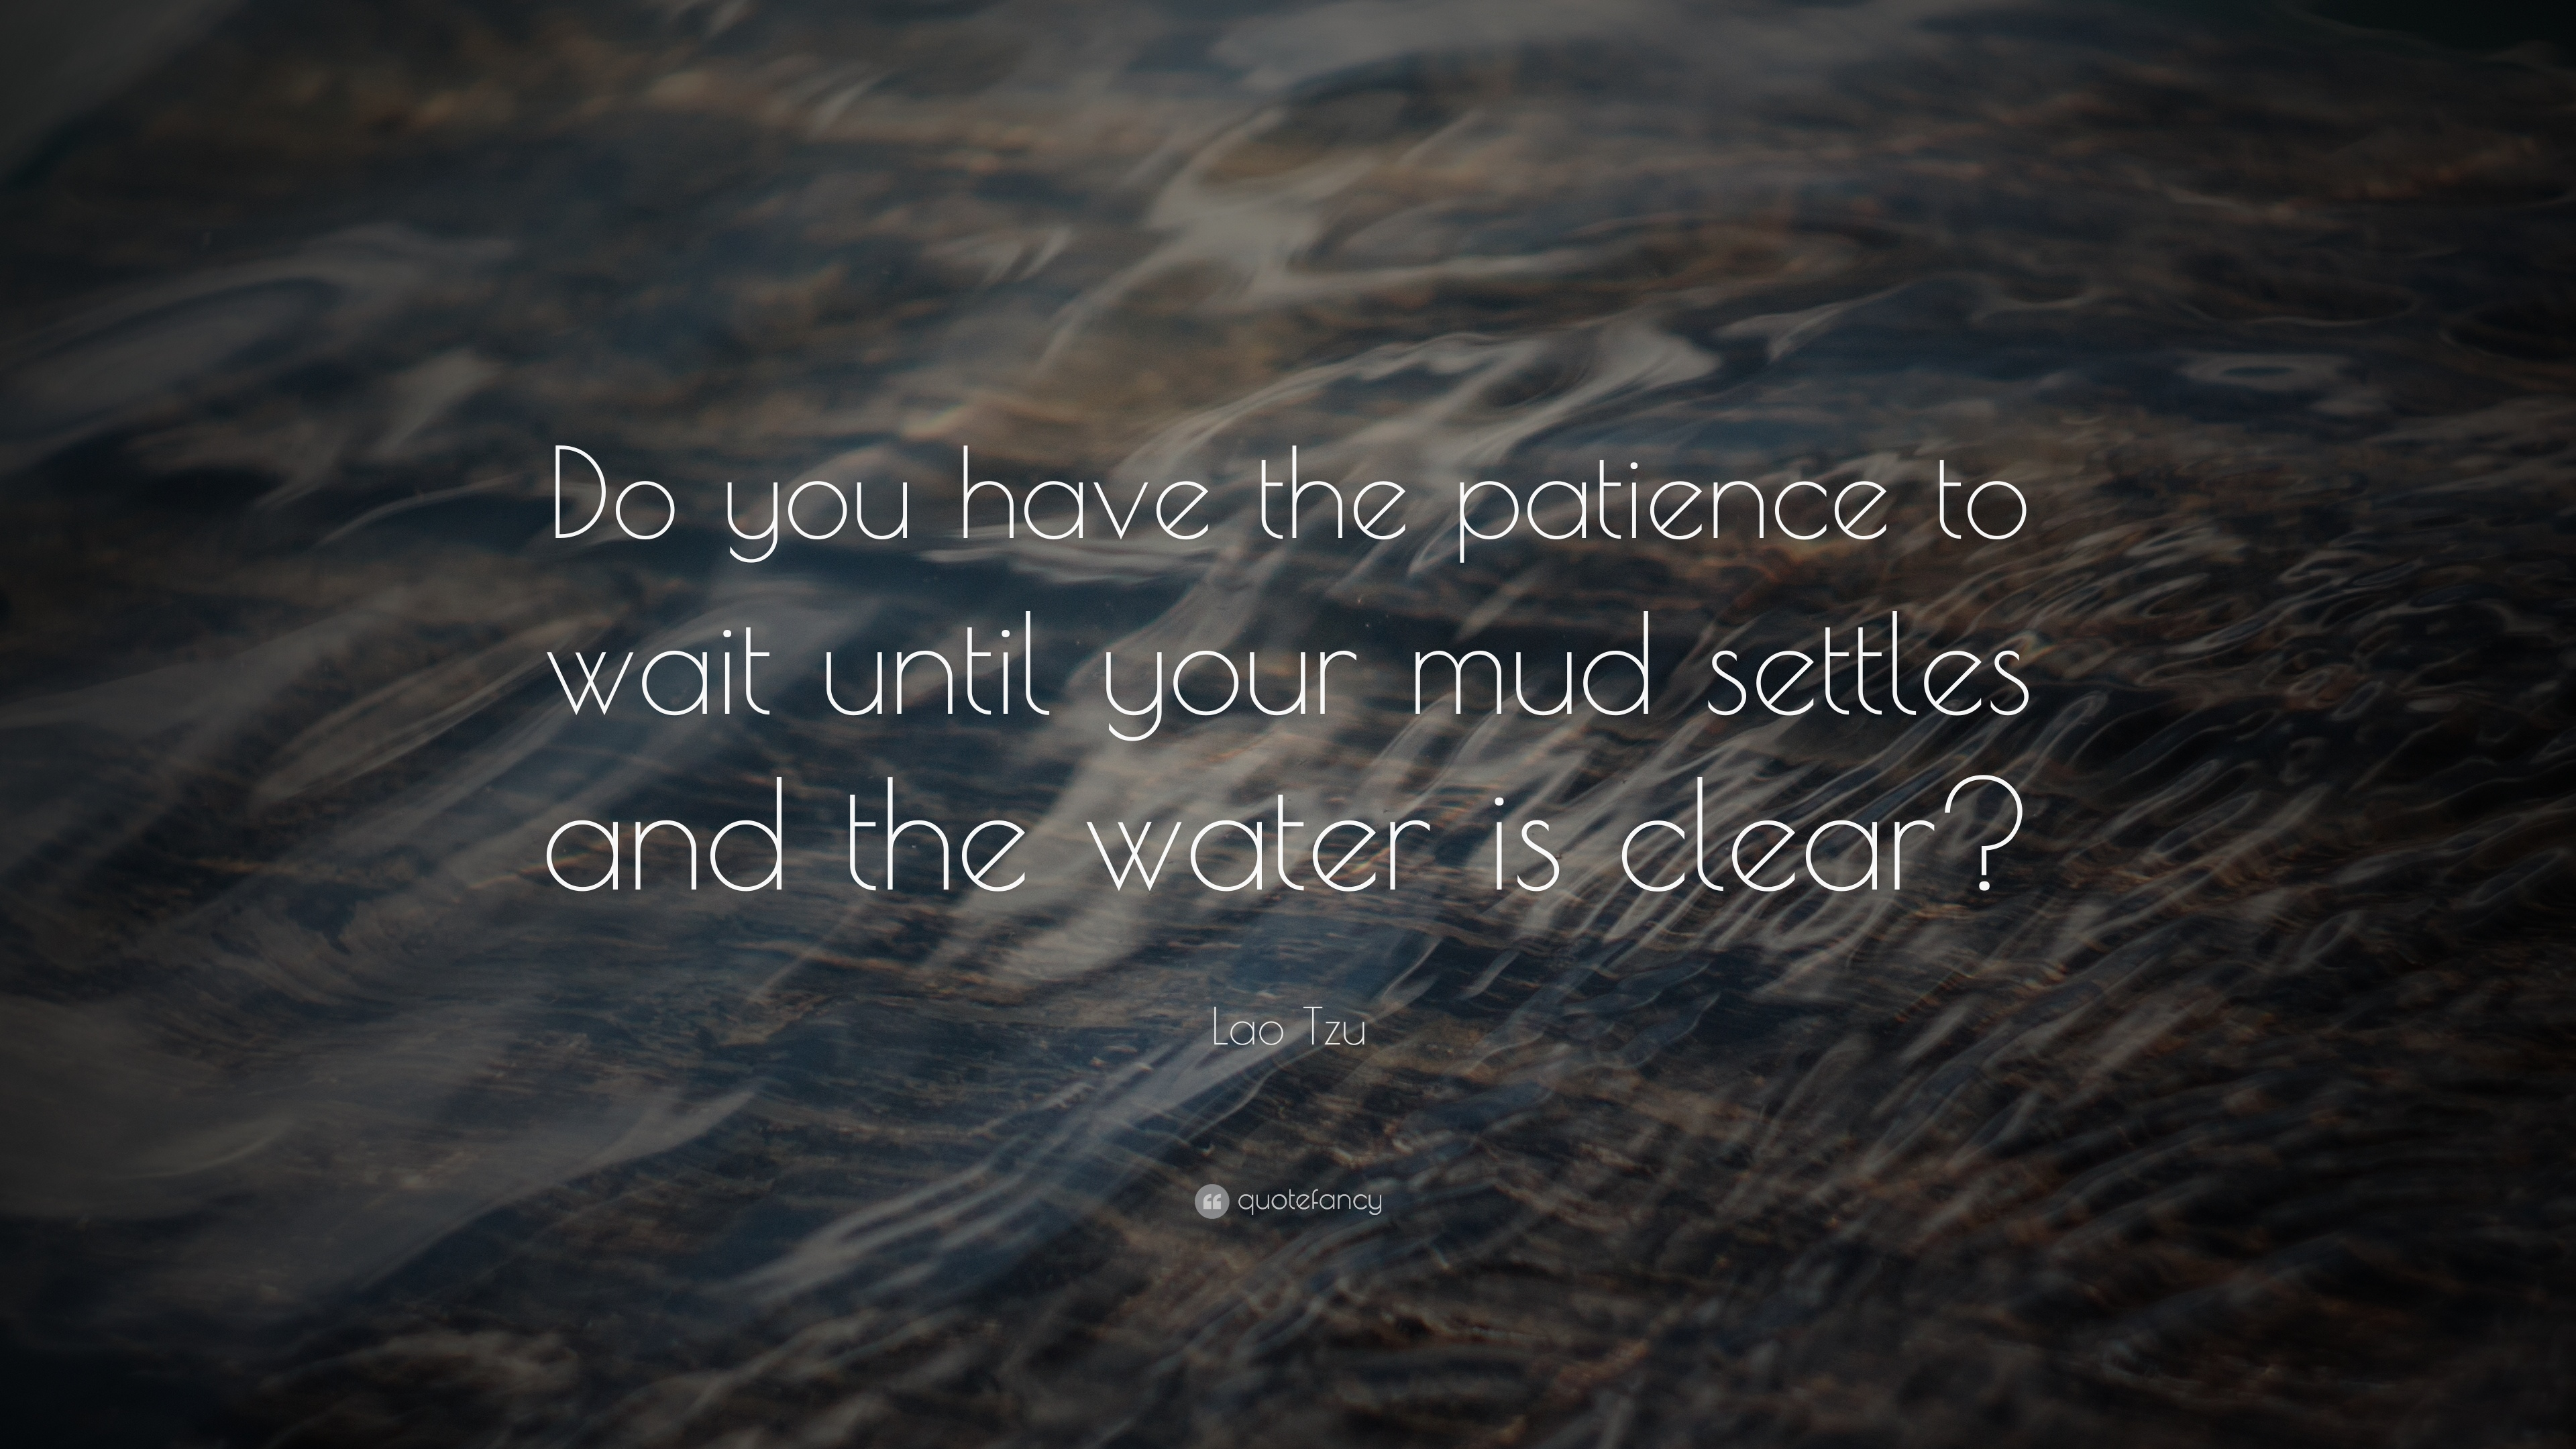 The Do You Have Lao Tzu Patience